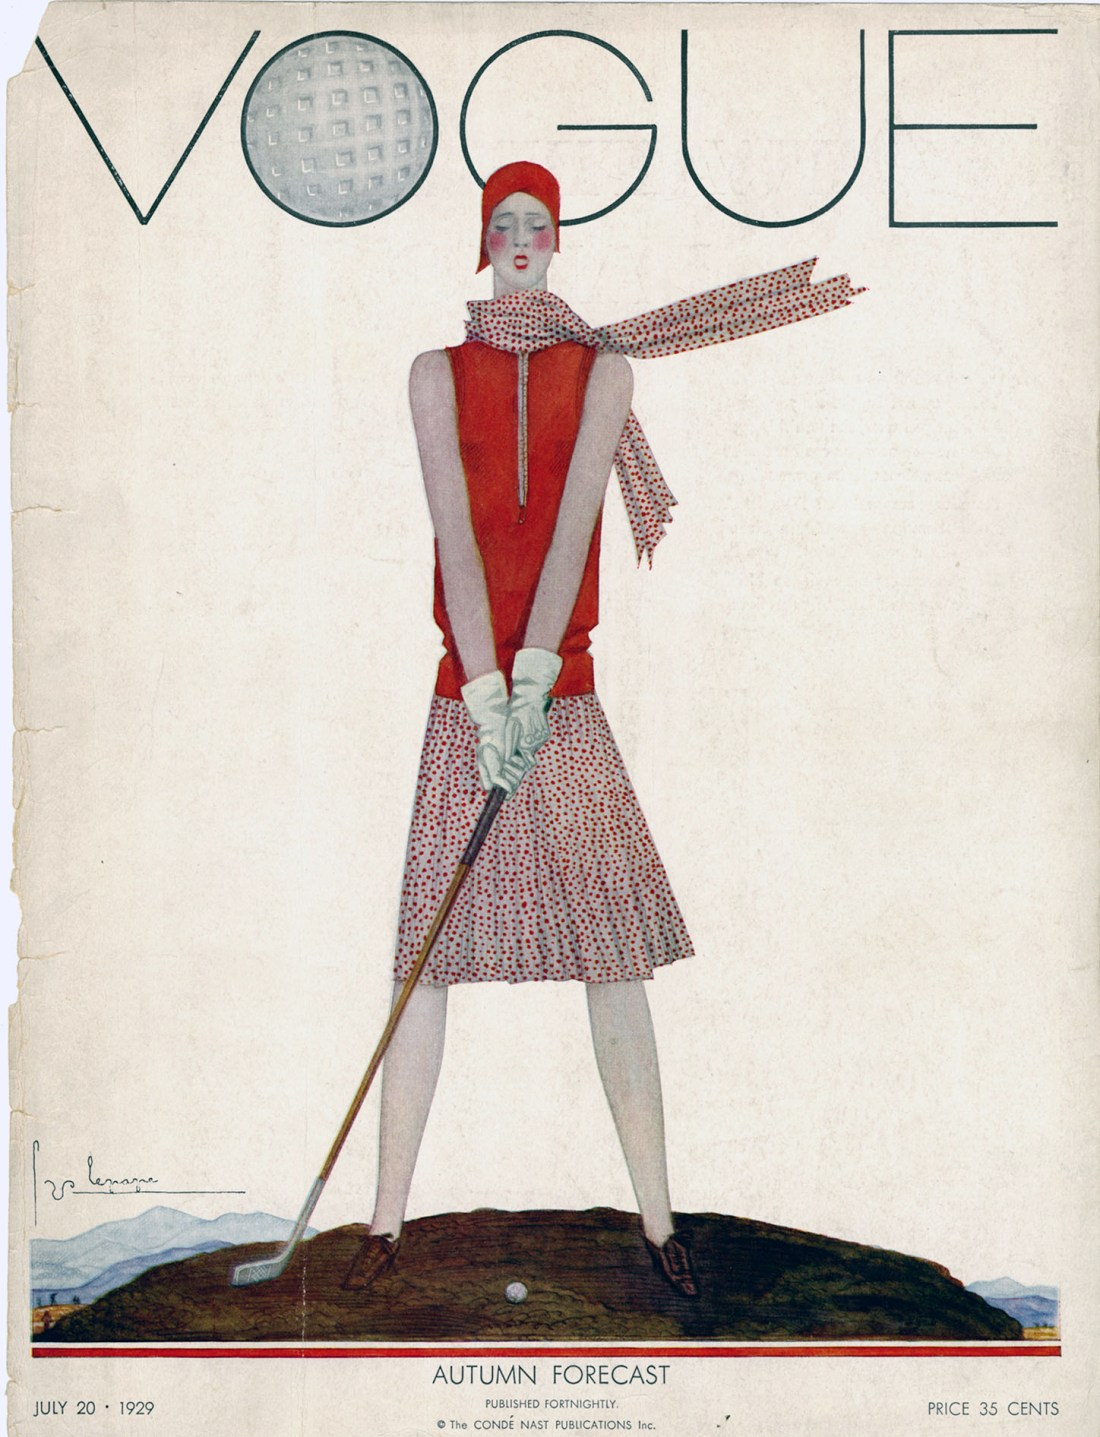 Cover for the July 20, 1929 issue of Vogue.